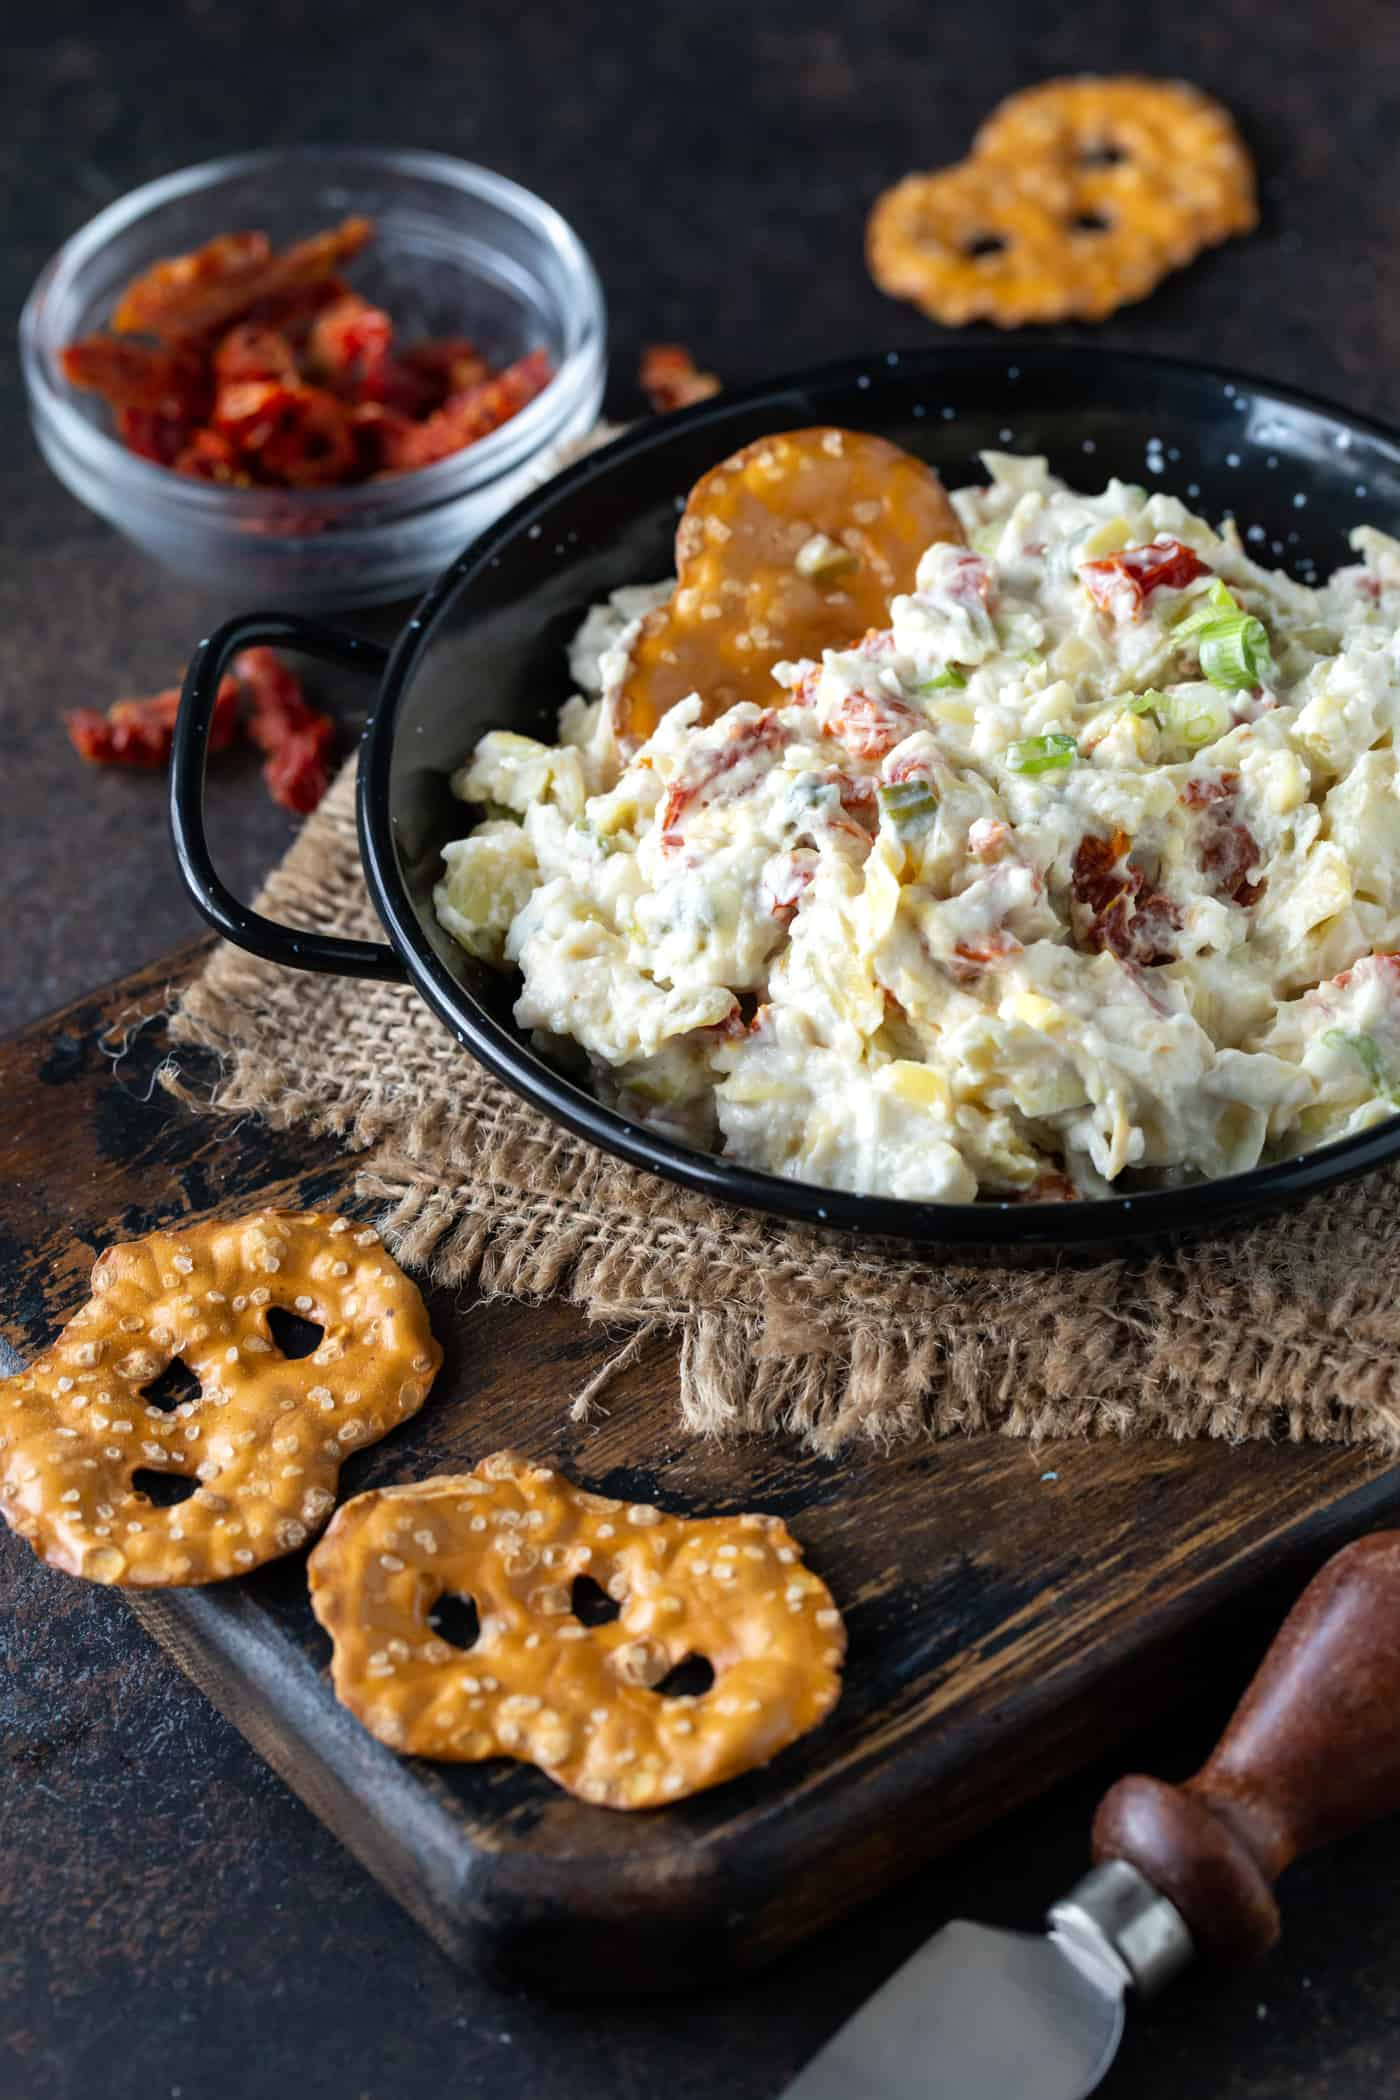 Asiago Dip recipe in a black serving dish, garnished with green onions and serves with pretzels for dipping.